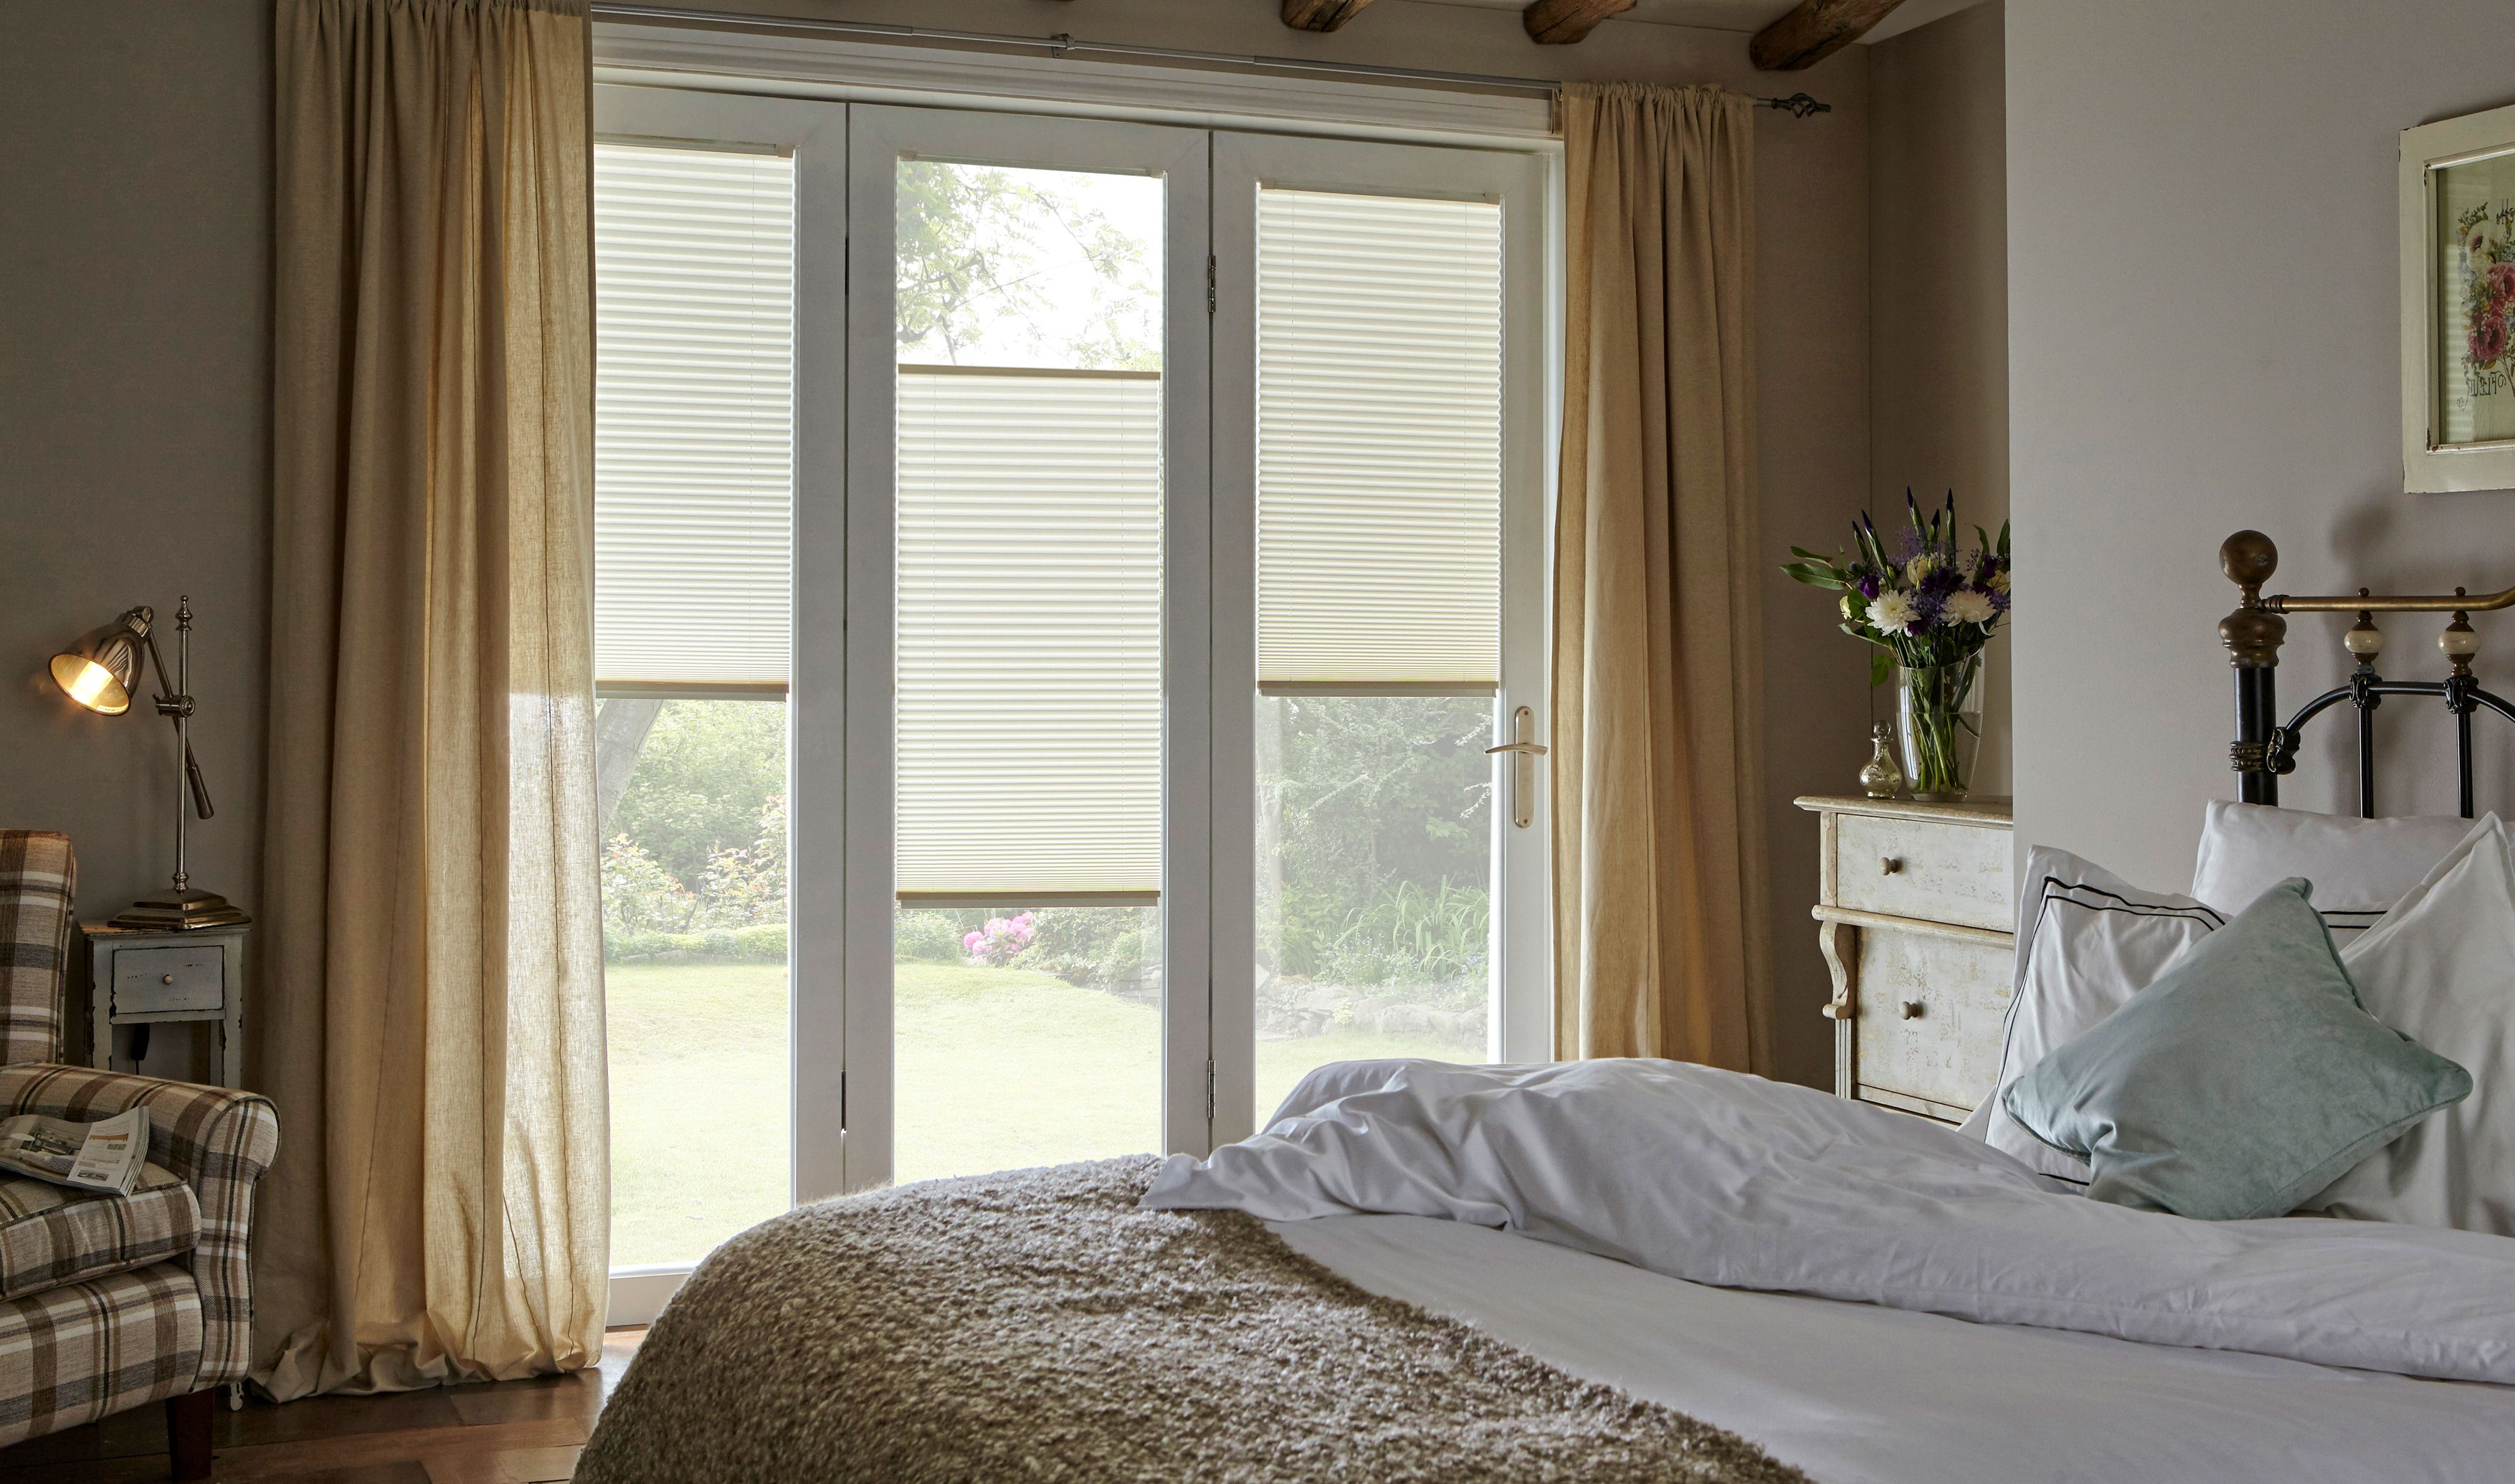 What's NEW with INTU? Living room blinds, Vertical